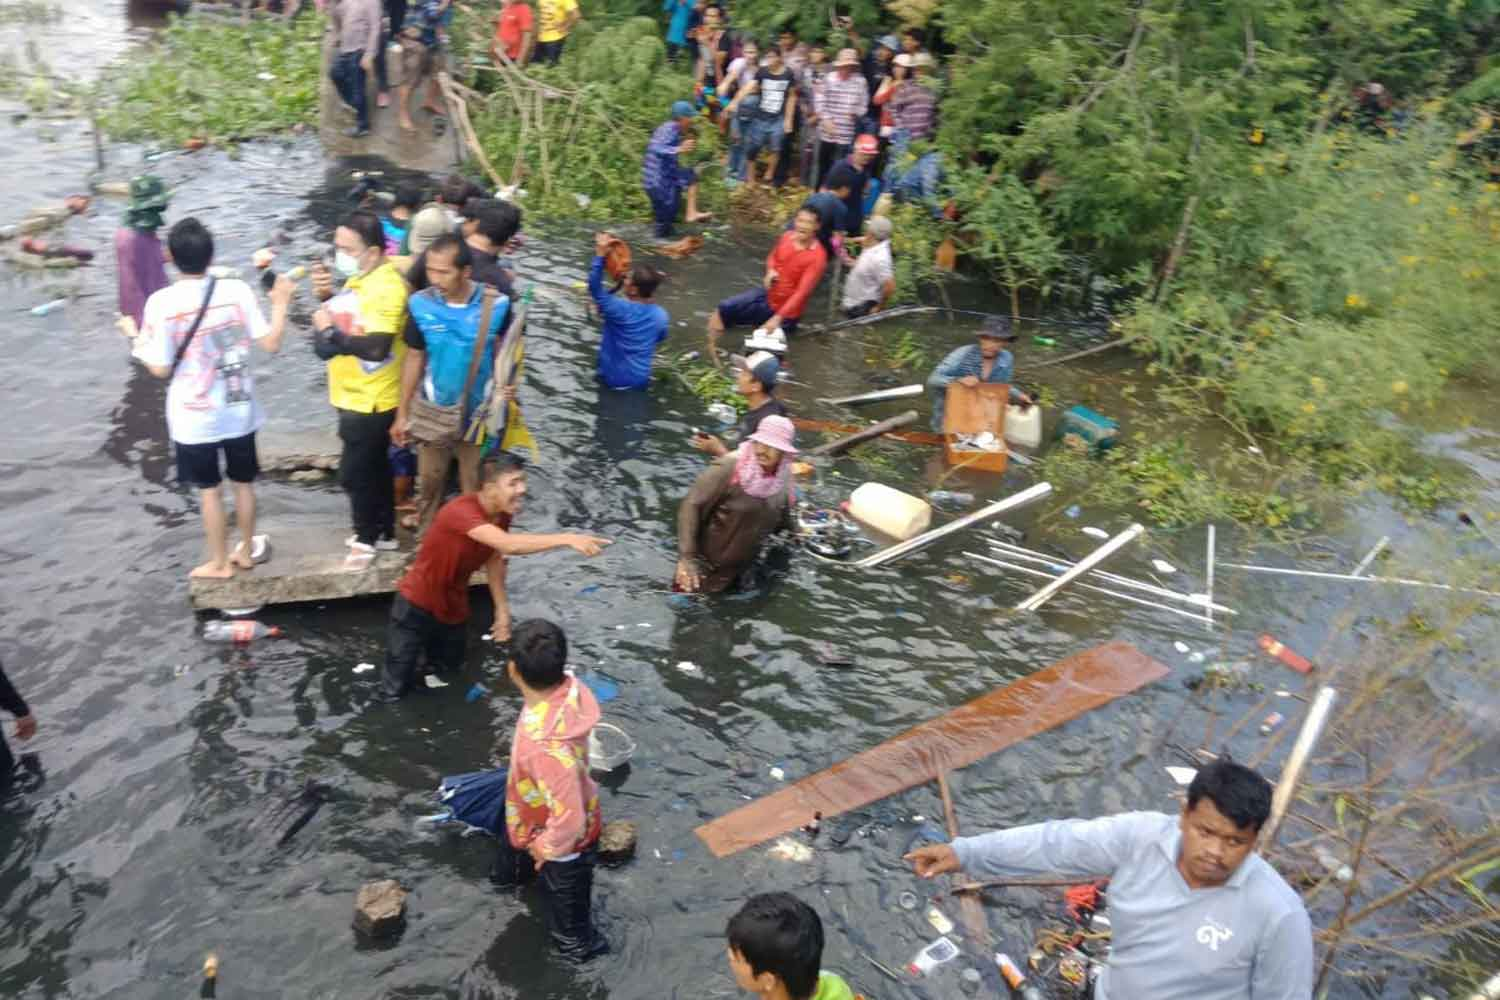 Spectators who fell into Khlong Nong Ngu Hao in Samut Prakan's Bang Sao Thong district when a walkway collapsed during a boat race on Monday. (Photo: Suthiwit Chayutworakan)